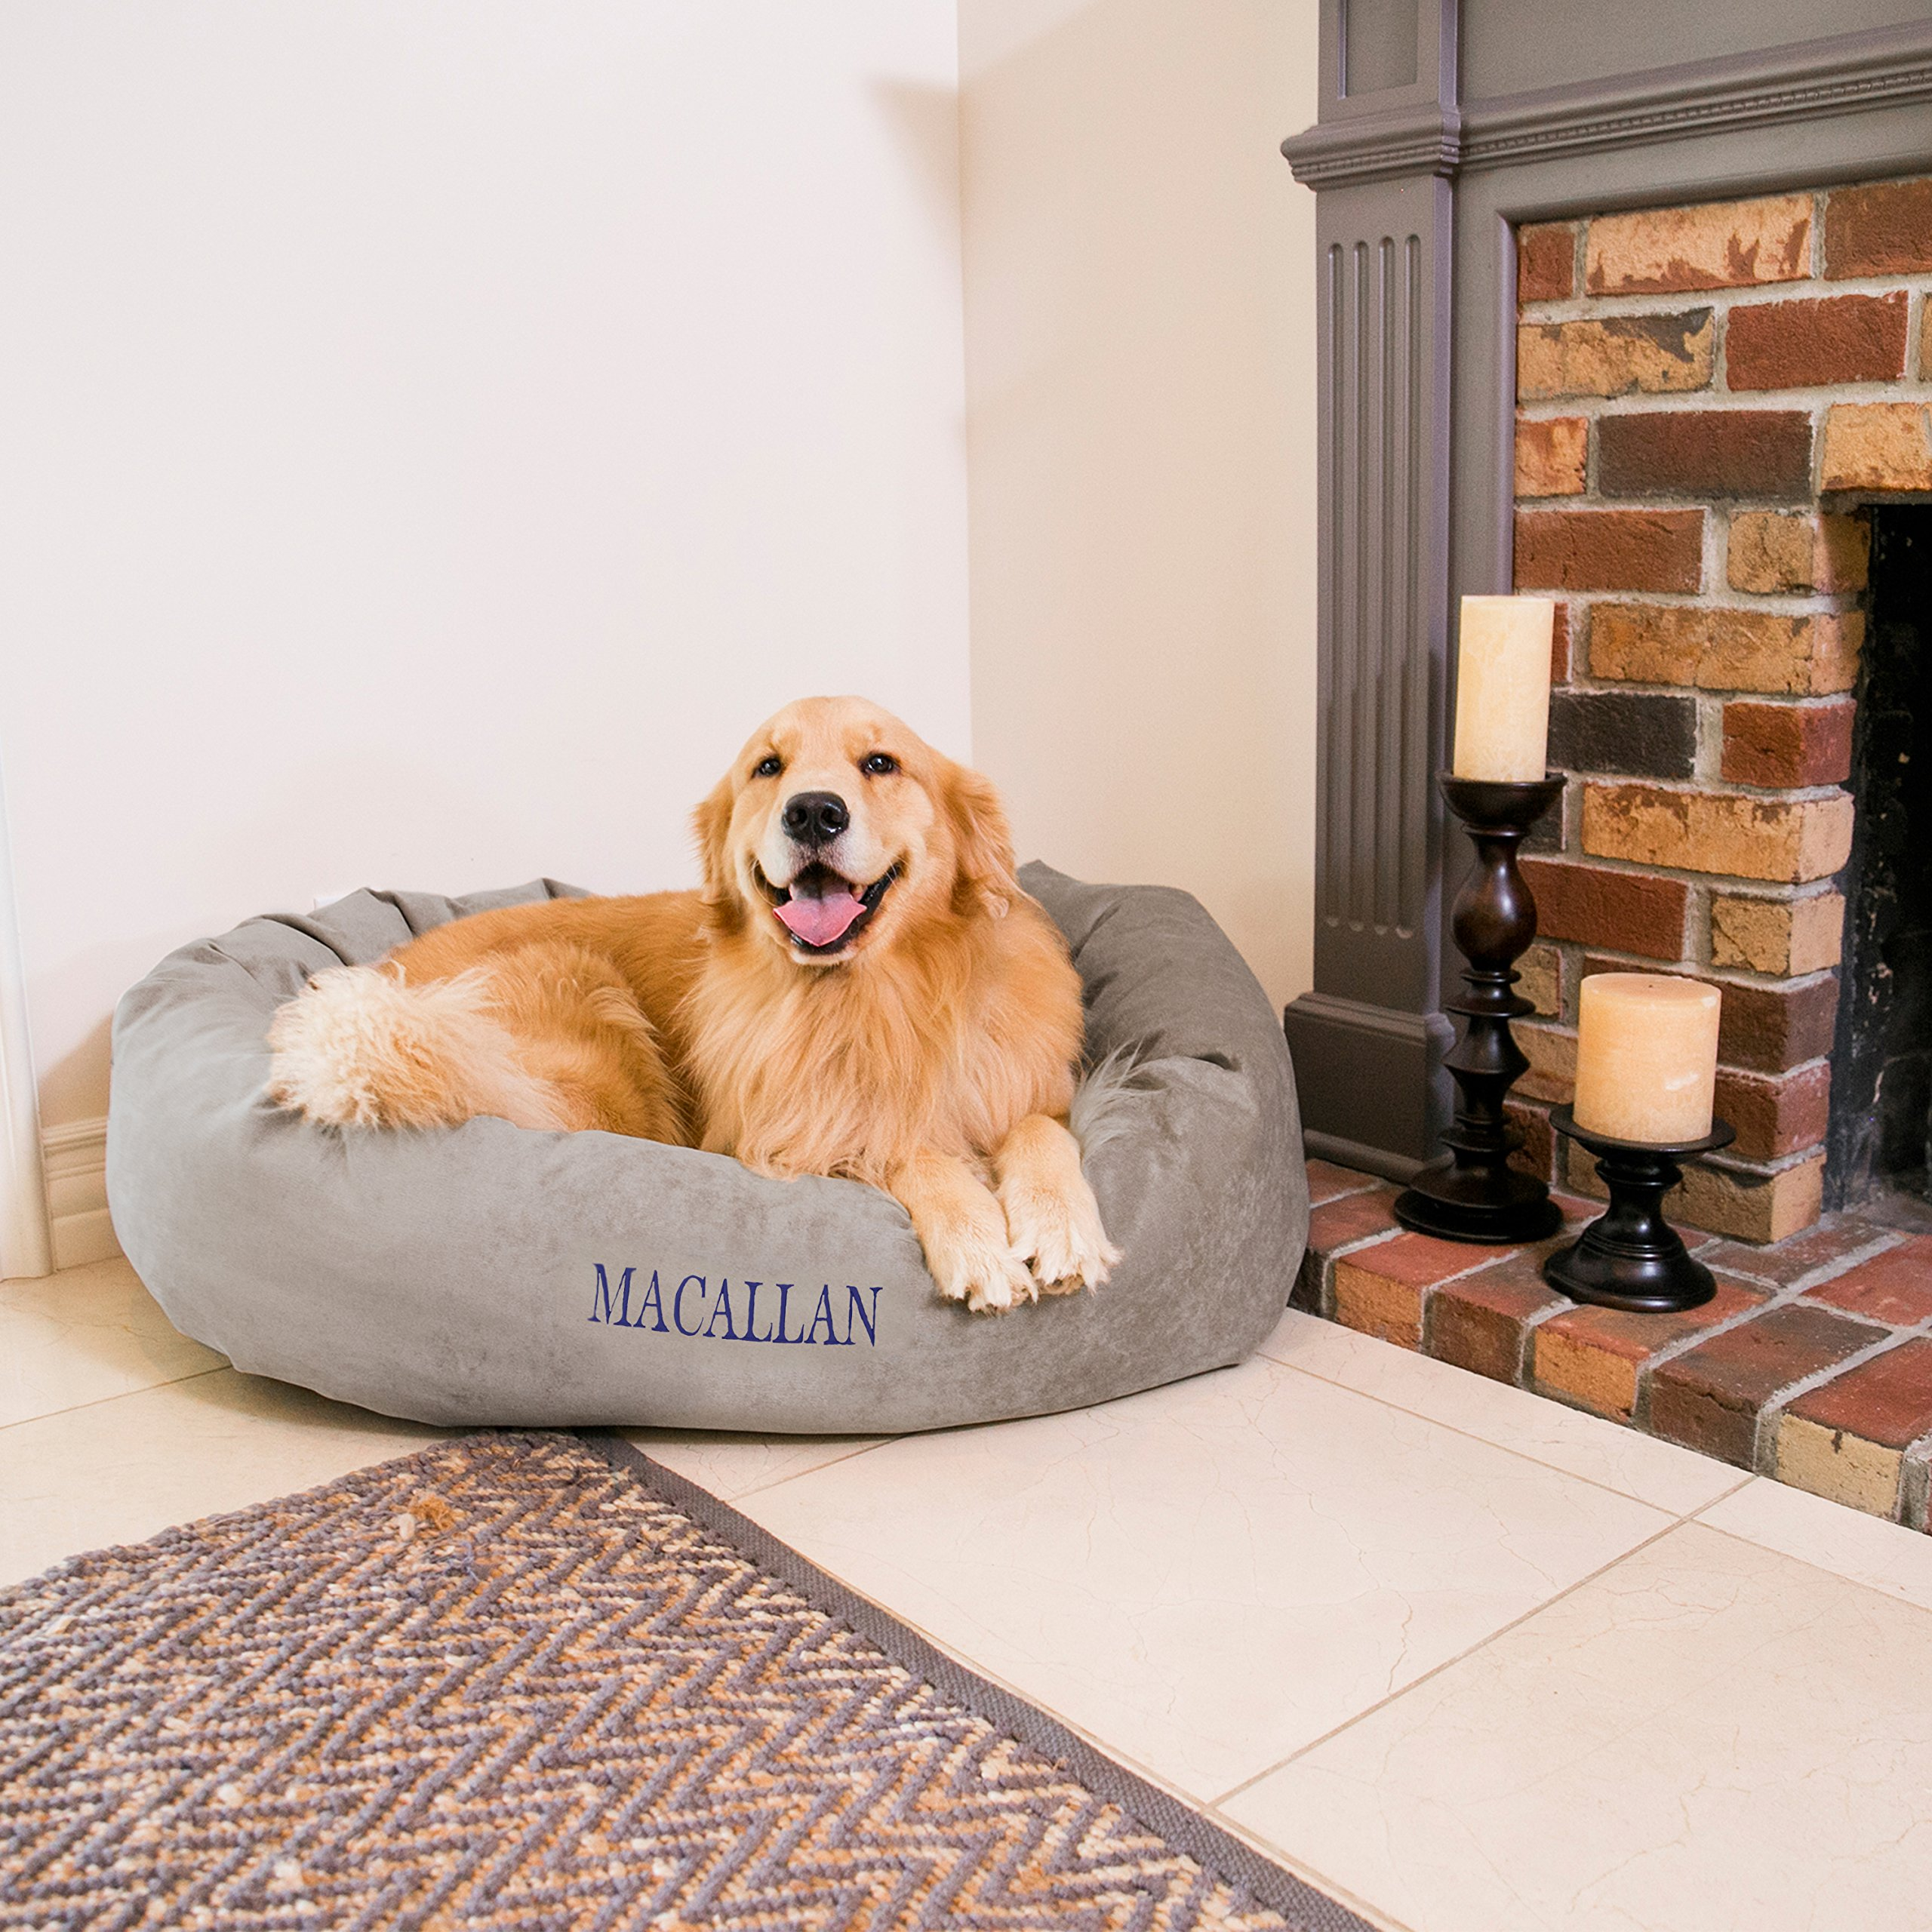 Majestic Pet Personalized Bagel Dog Bed - Machine Washable - Soft Comfortable Sleeping Mat - Durable Bedding Supportive Cushion Custom Embroidered - Available Replacement Covers - Large Silver Grey by Majestic Pet